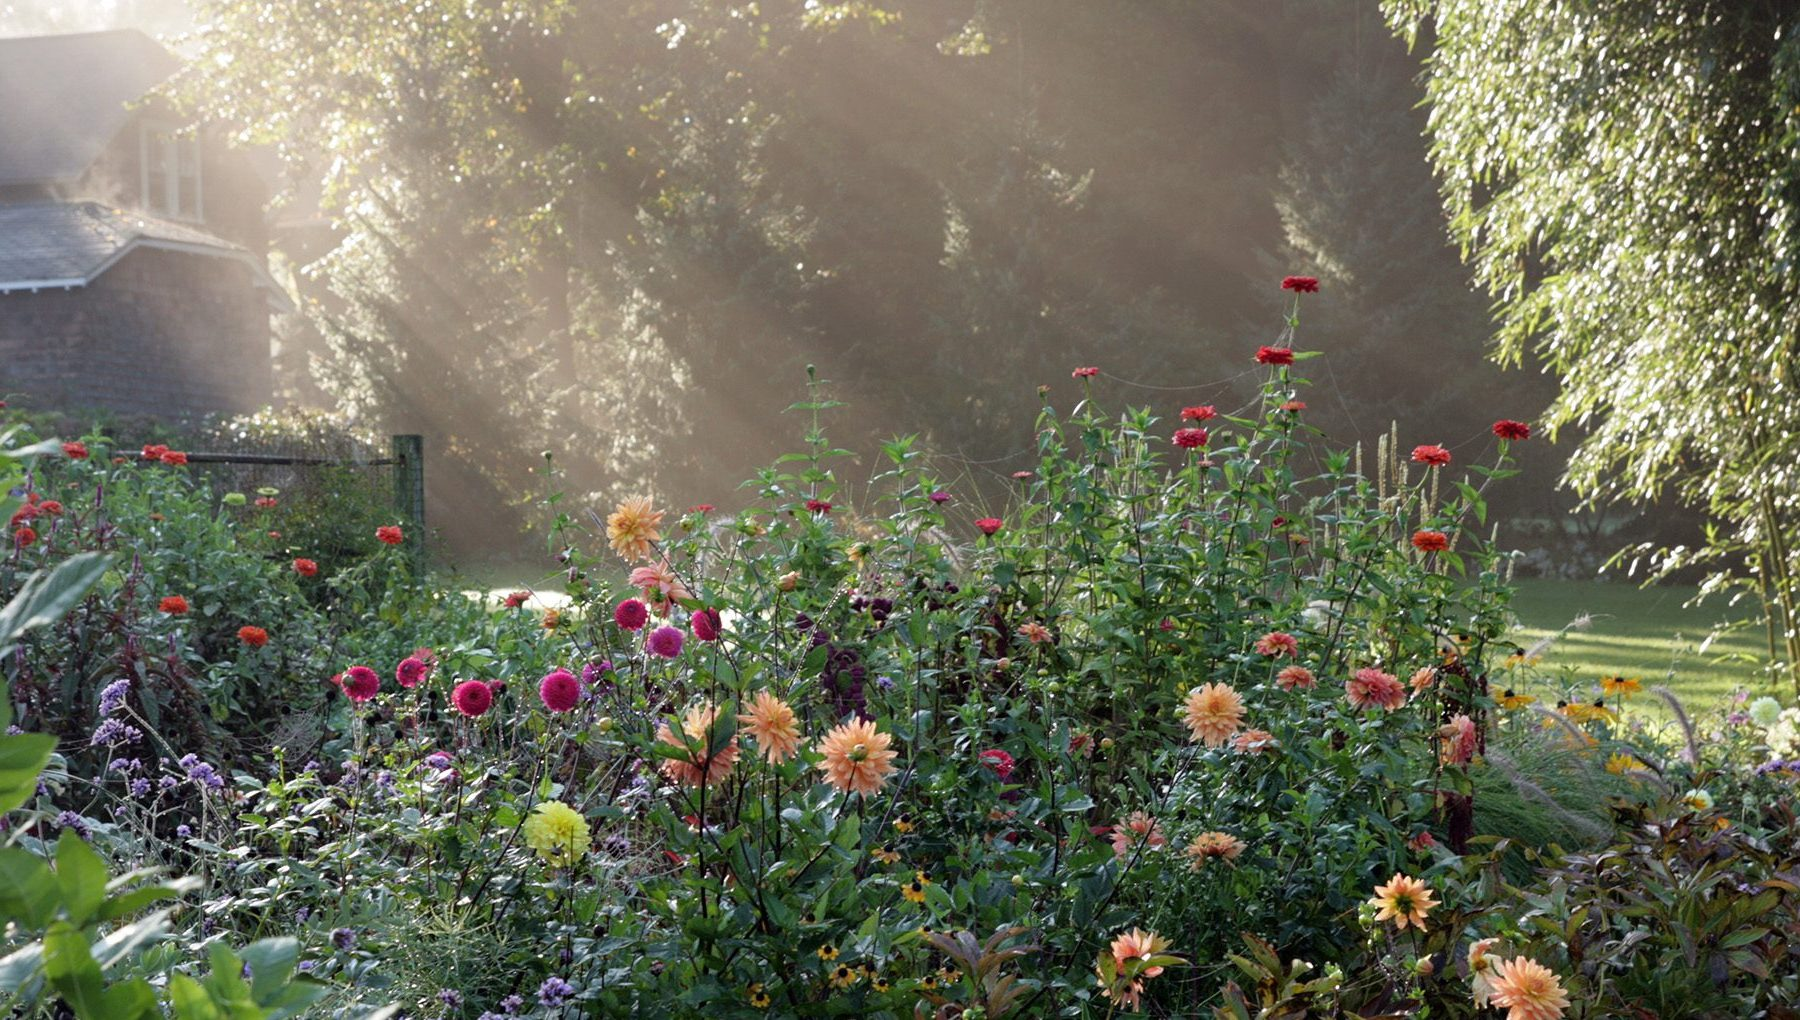 Blithewold, an American Garden Treasure ... Come, and be inspired